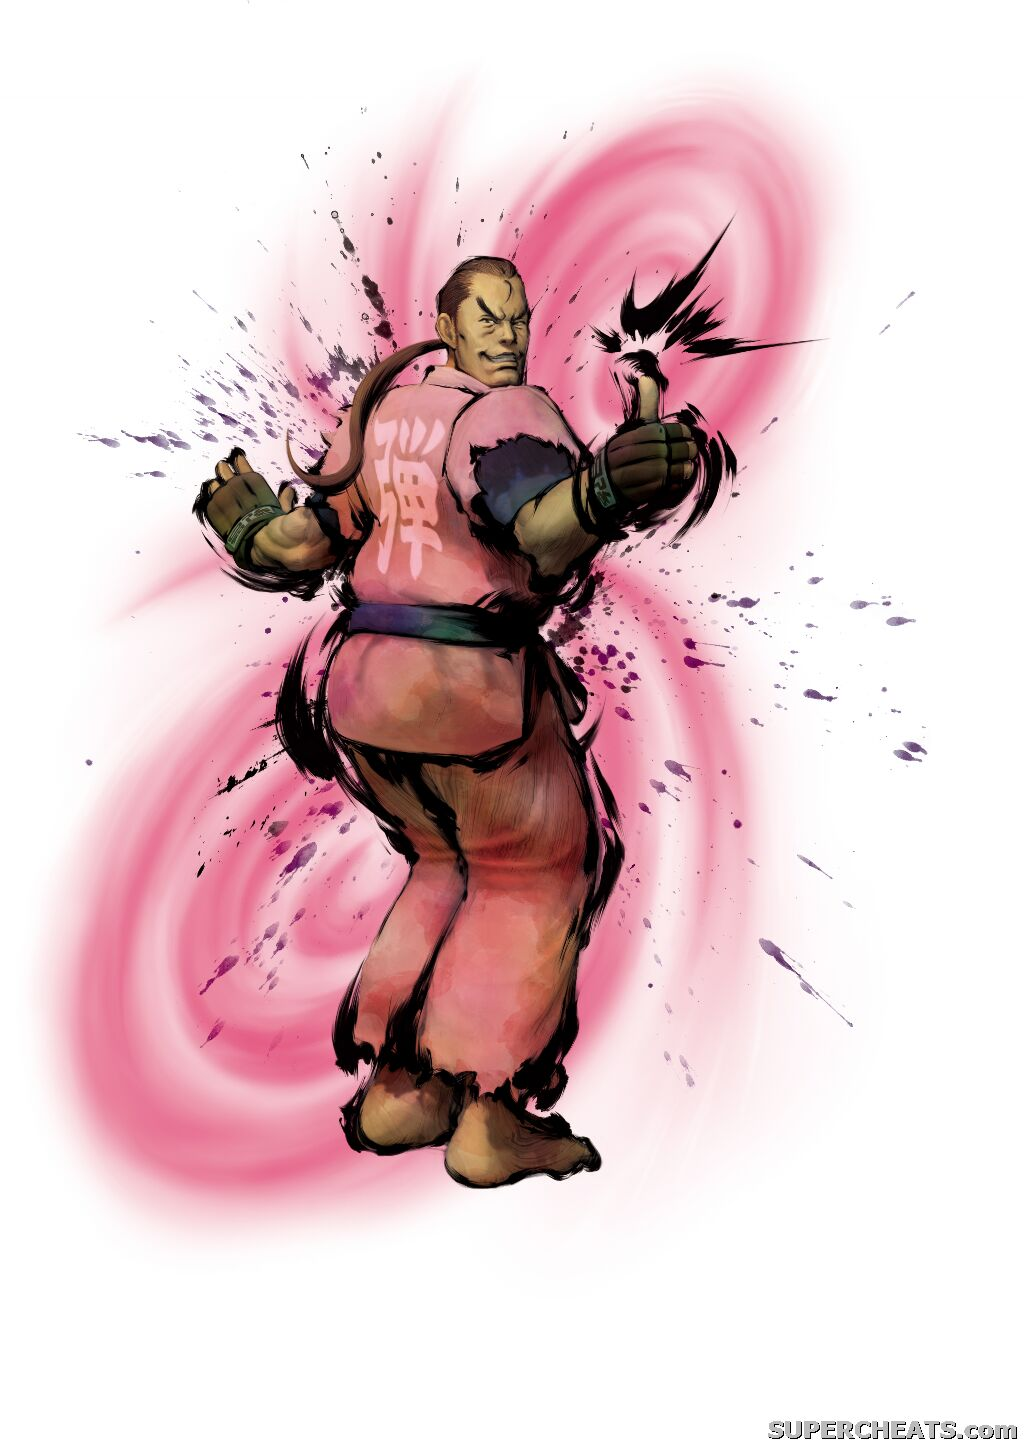 Character Art Street Fighter IV Guide